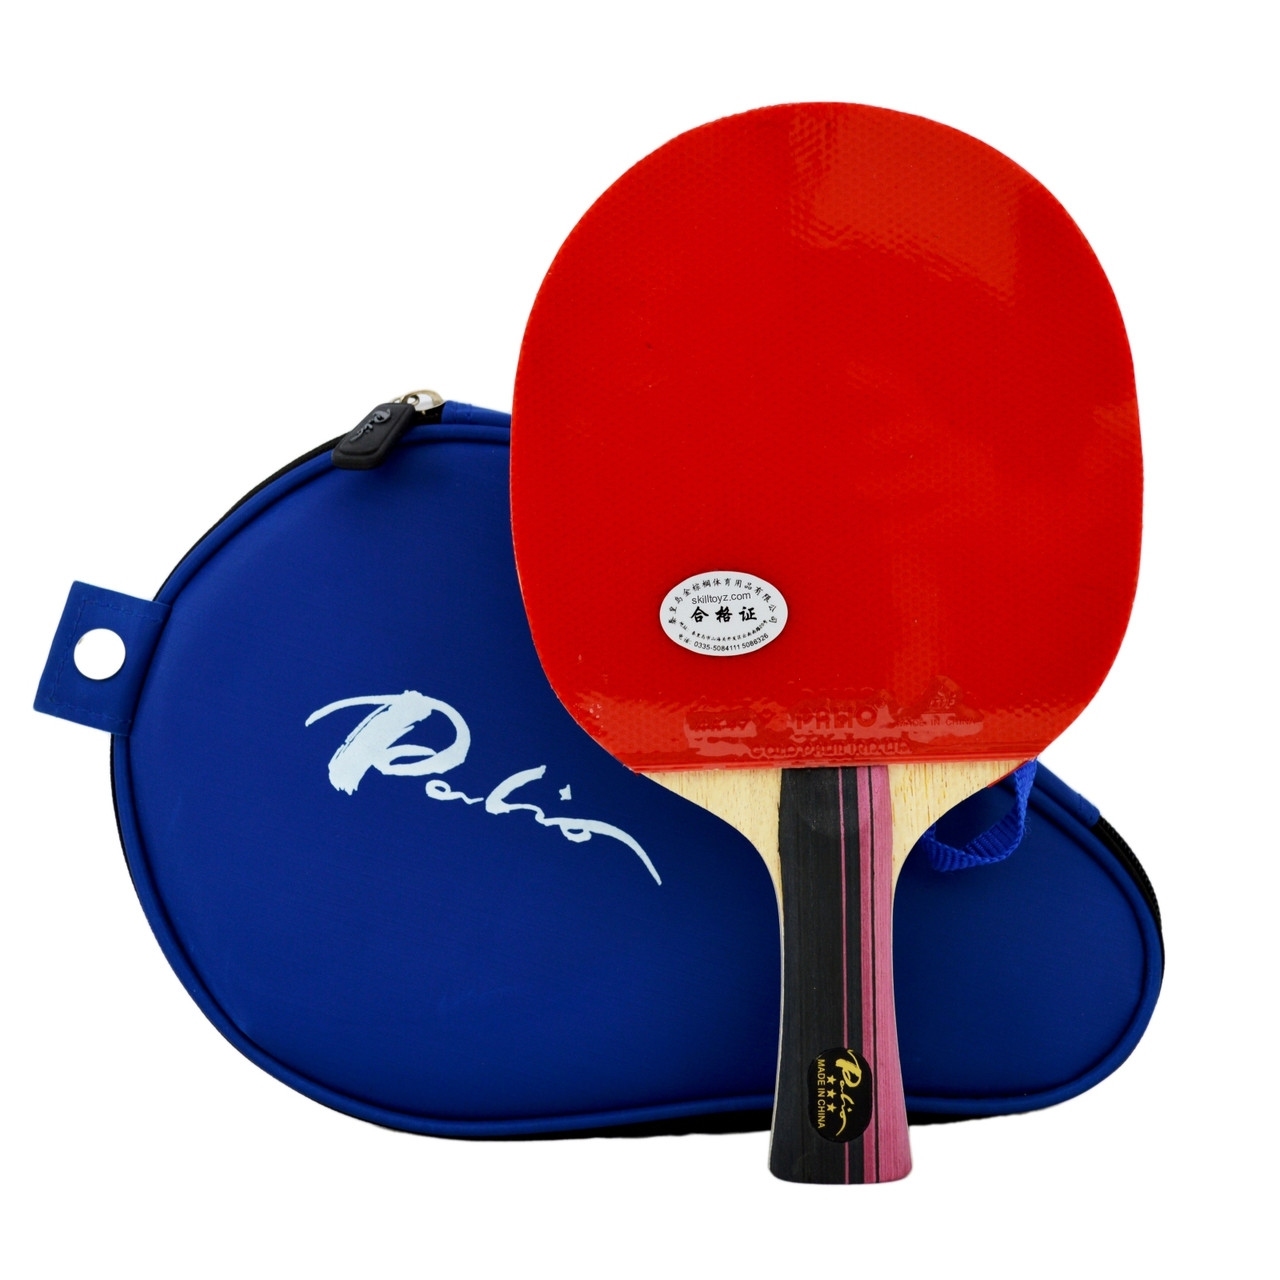 Palio 3 Star Professional Table Tennis Bat with case fitted with Palio AK47 Biotech rubbers  sc 1 st  SkillToyz & Palio 3 Star Professional Table Tennis Bat with case AK47 Rubbers